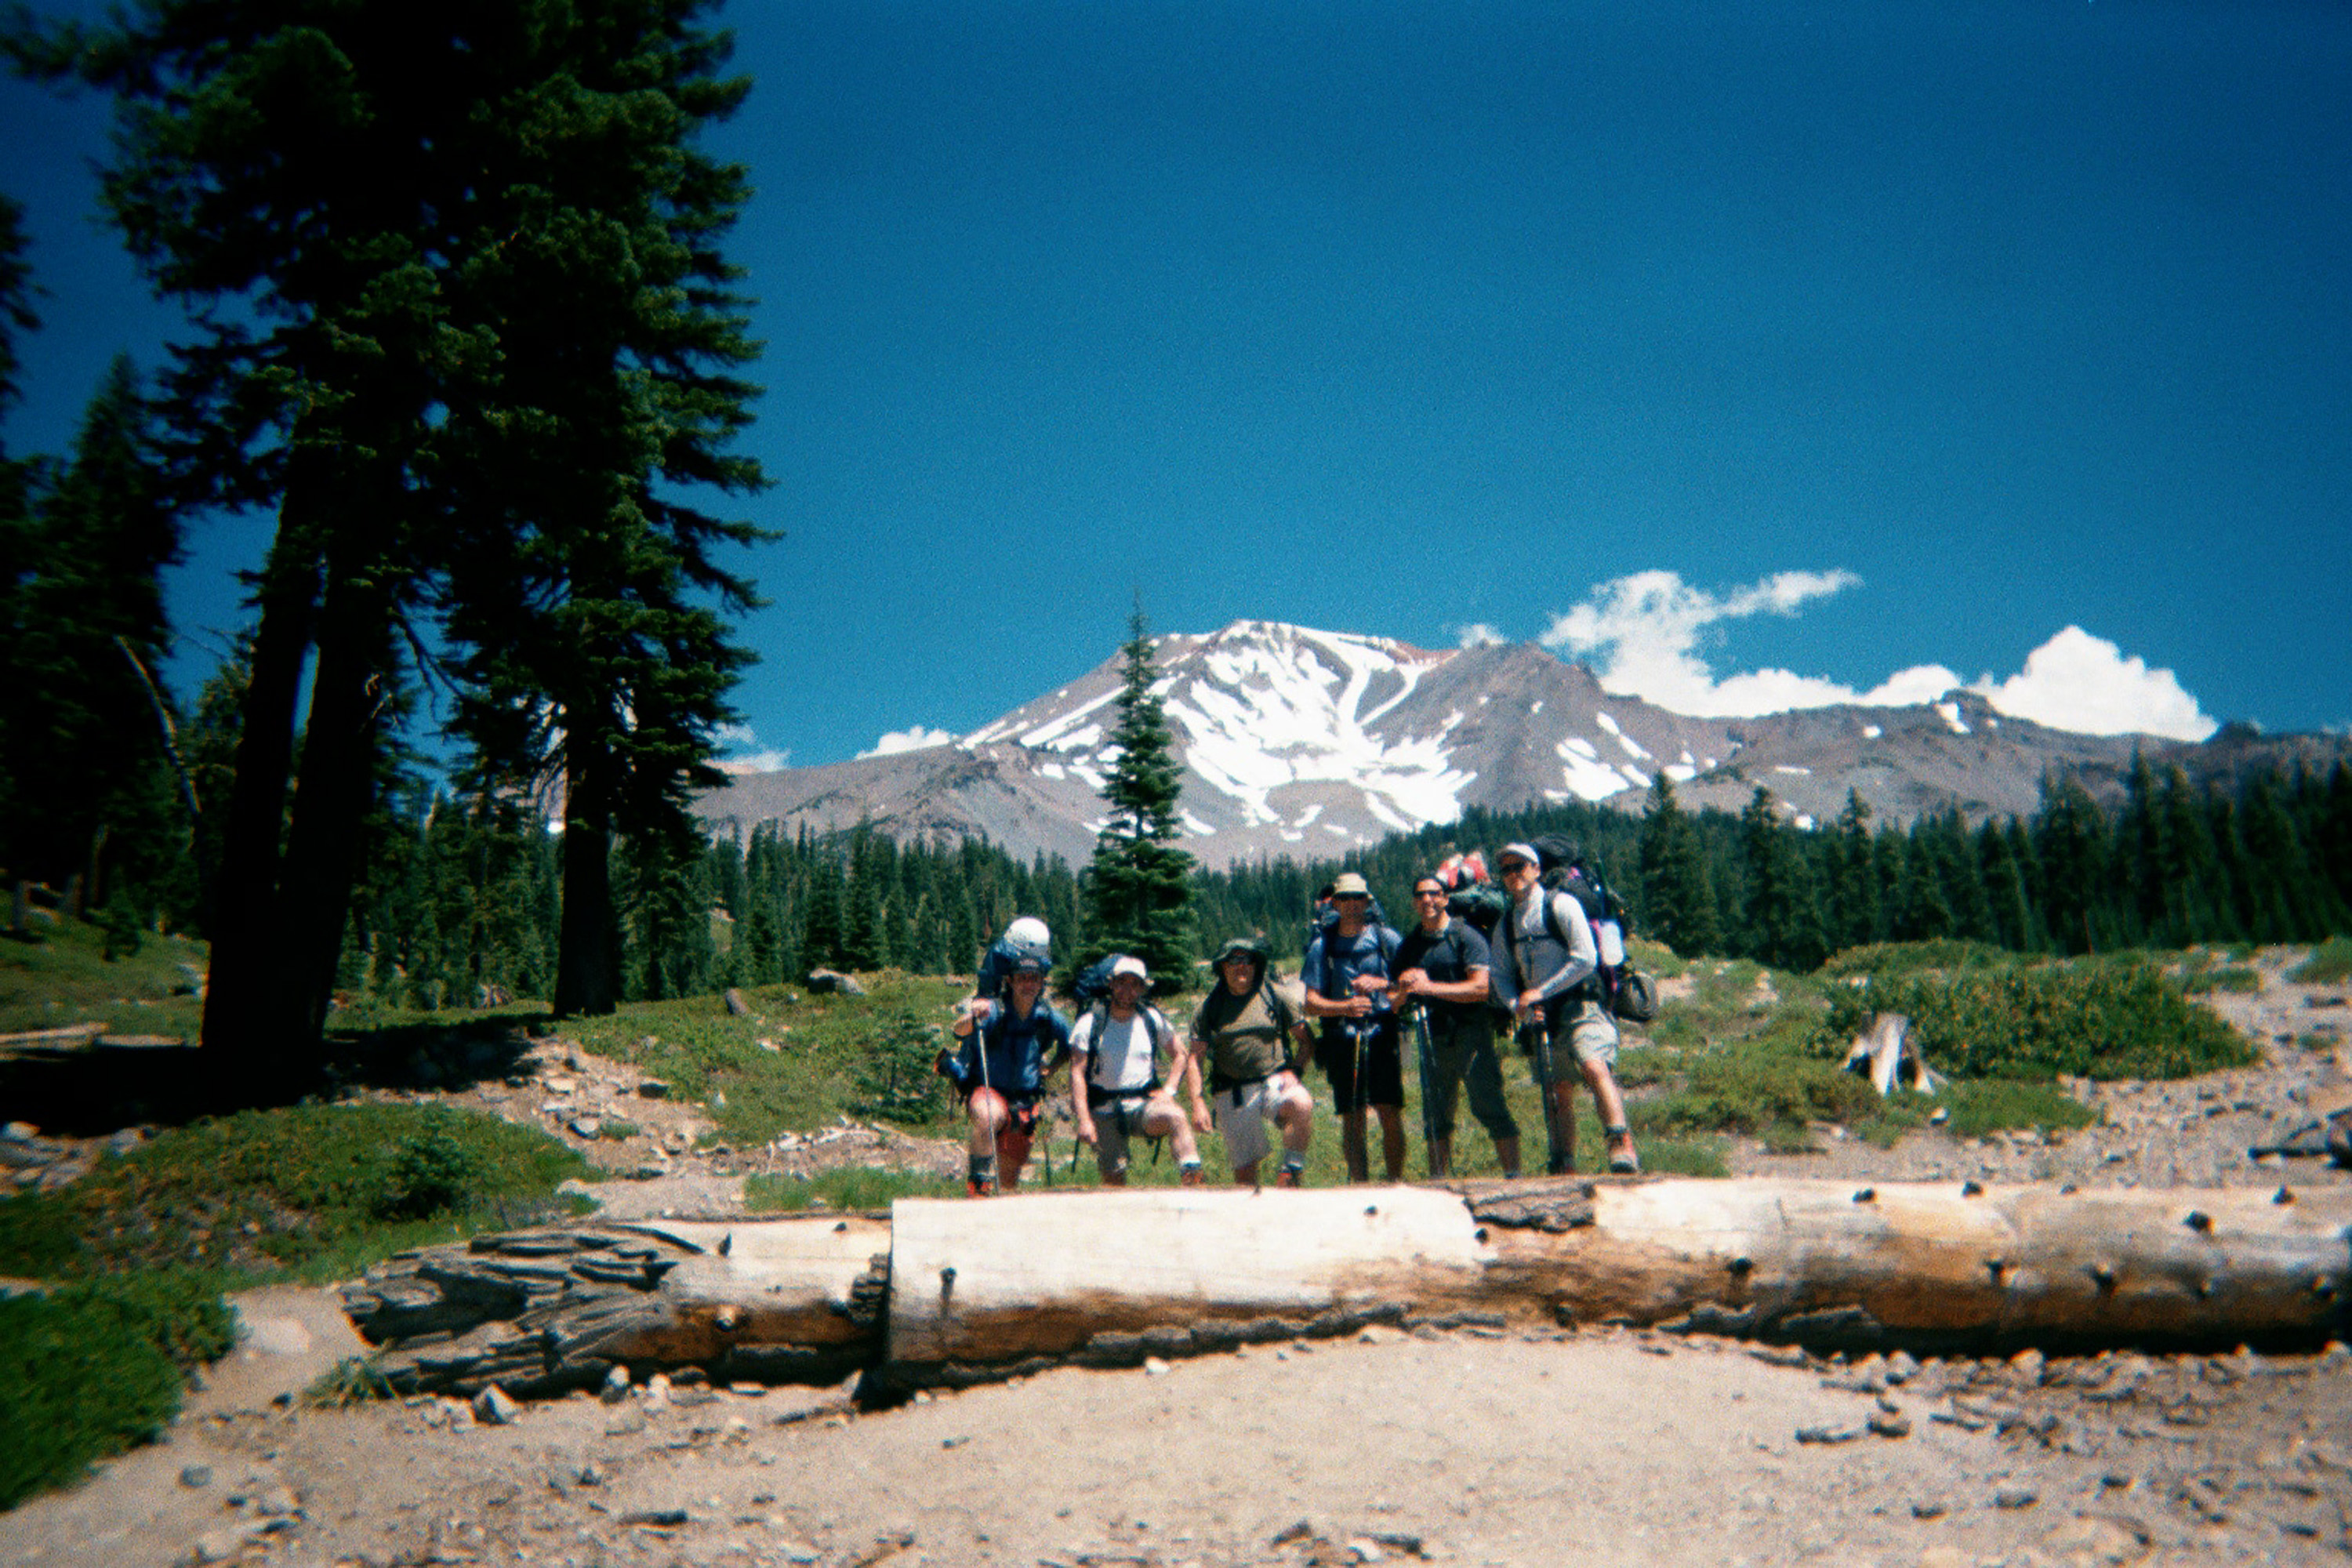 About to climb Mt. Shasta, 2002. (photo by some random dude)